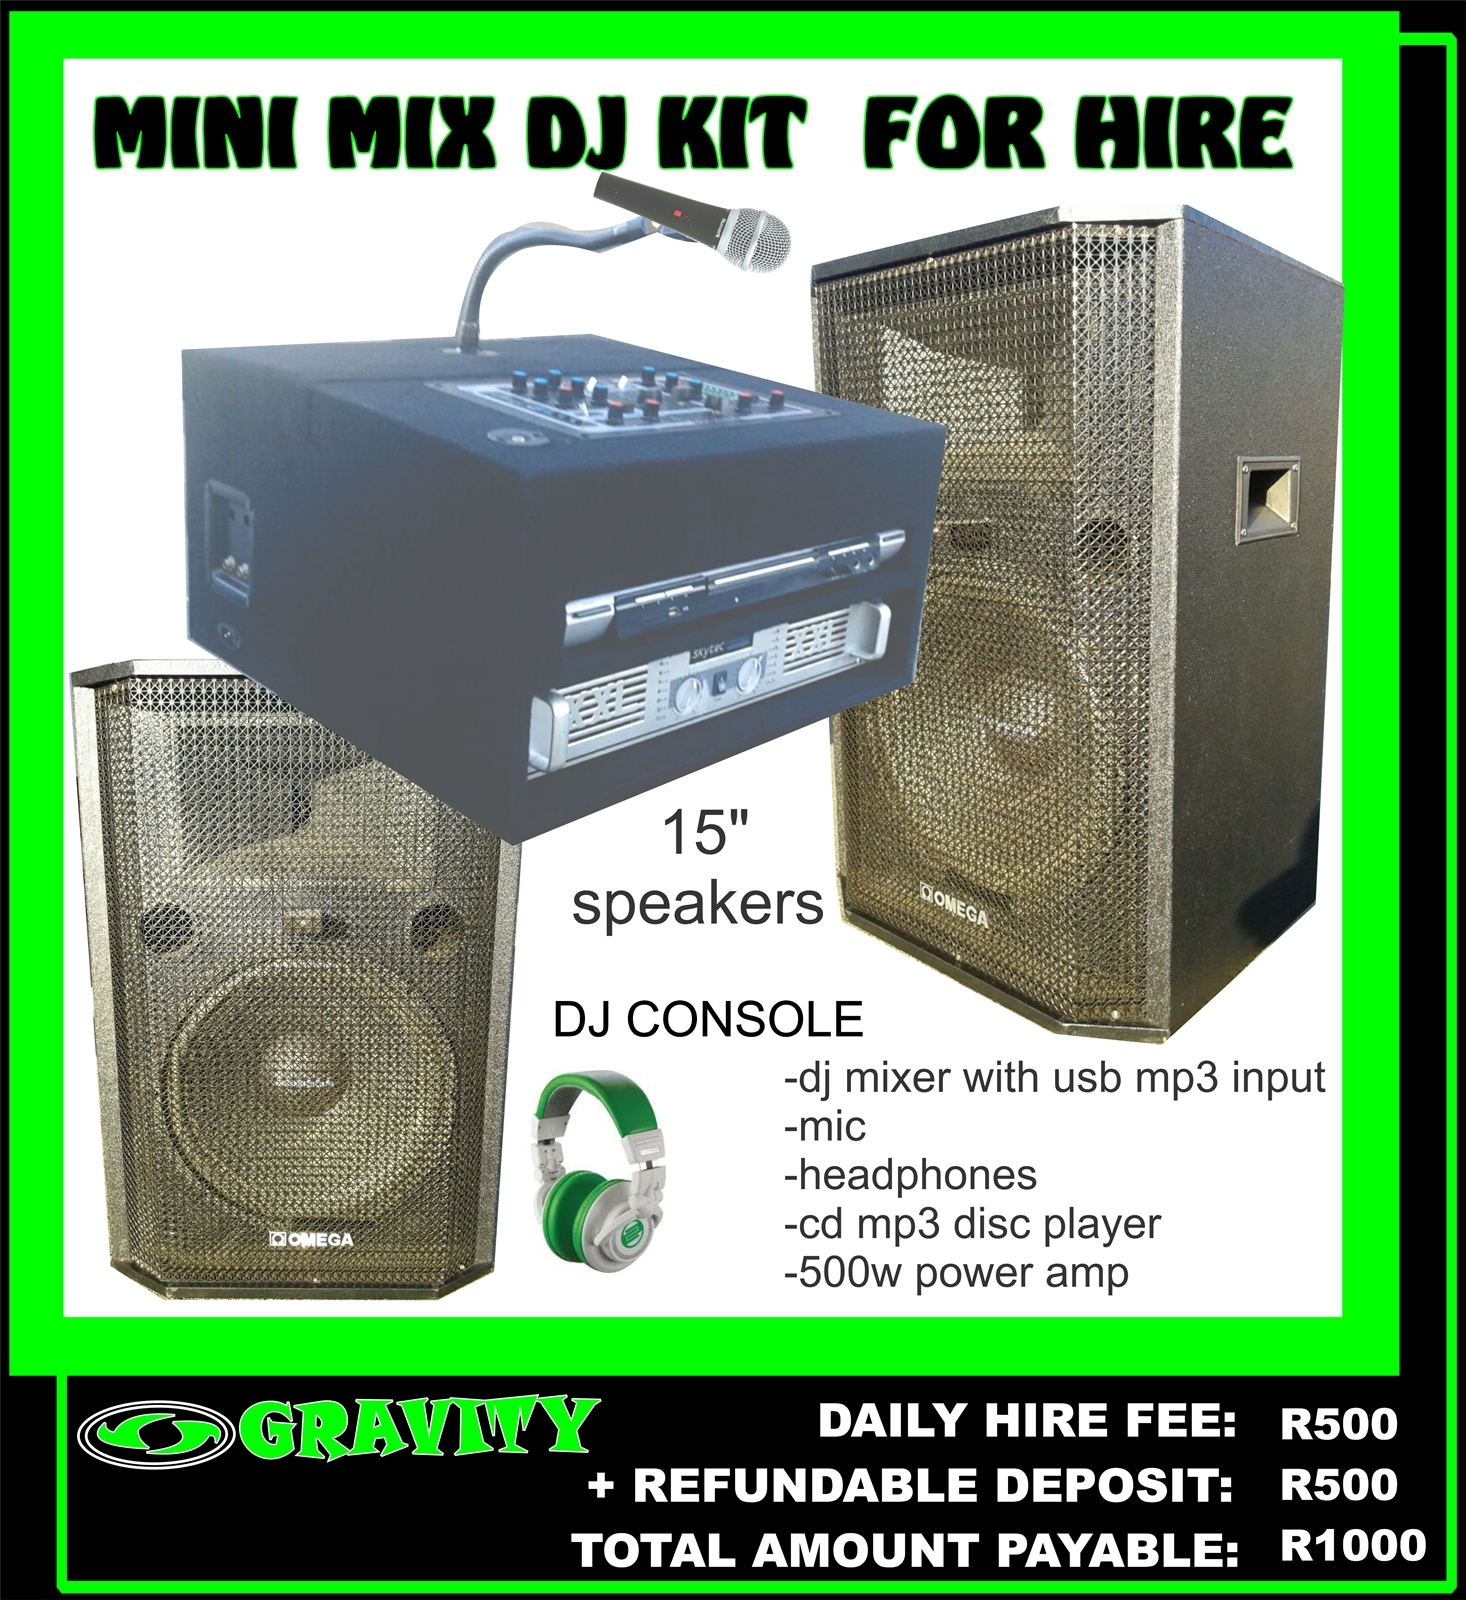 MINI MIX DJ COMBO KIT - DJ EQUIPMENT FOR HIRE IN DURBAN NOW AVAILABLE AT GRAVITY DJ STORE 0315072463  -DJ CONSOLE WITH USB MP3 PLAYBACK   -500W POWER AMPLIFIER  -Dj MIXER WITH USB/SD MP3 PLAYBACK  -CD MP3 DISC PLAYER  -2 x 15